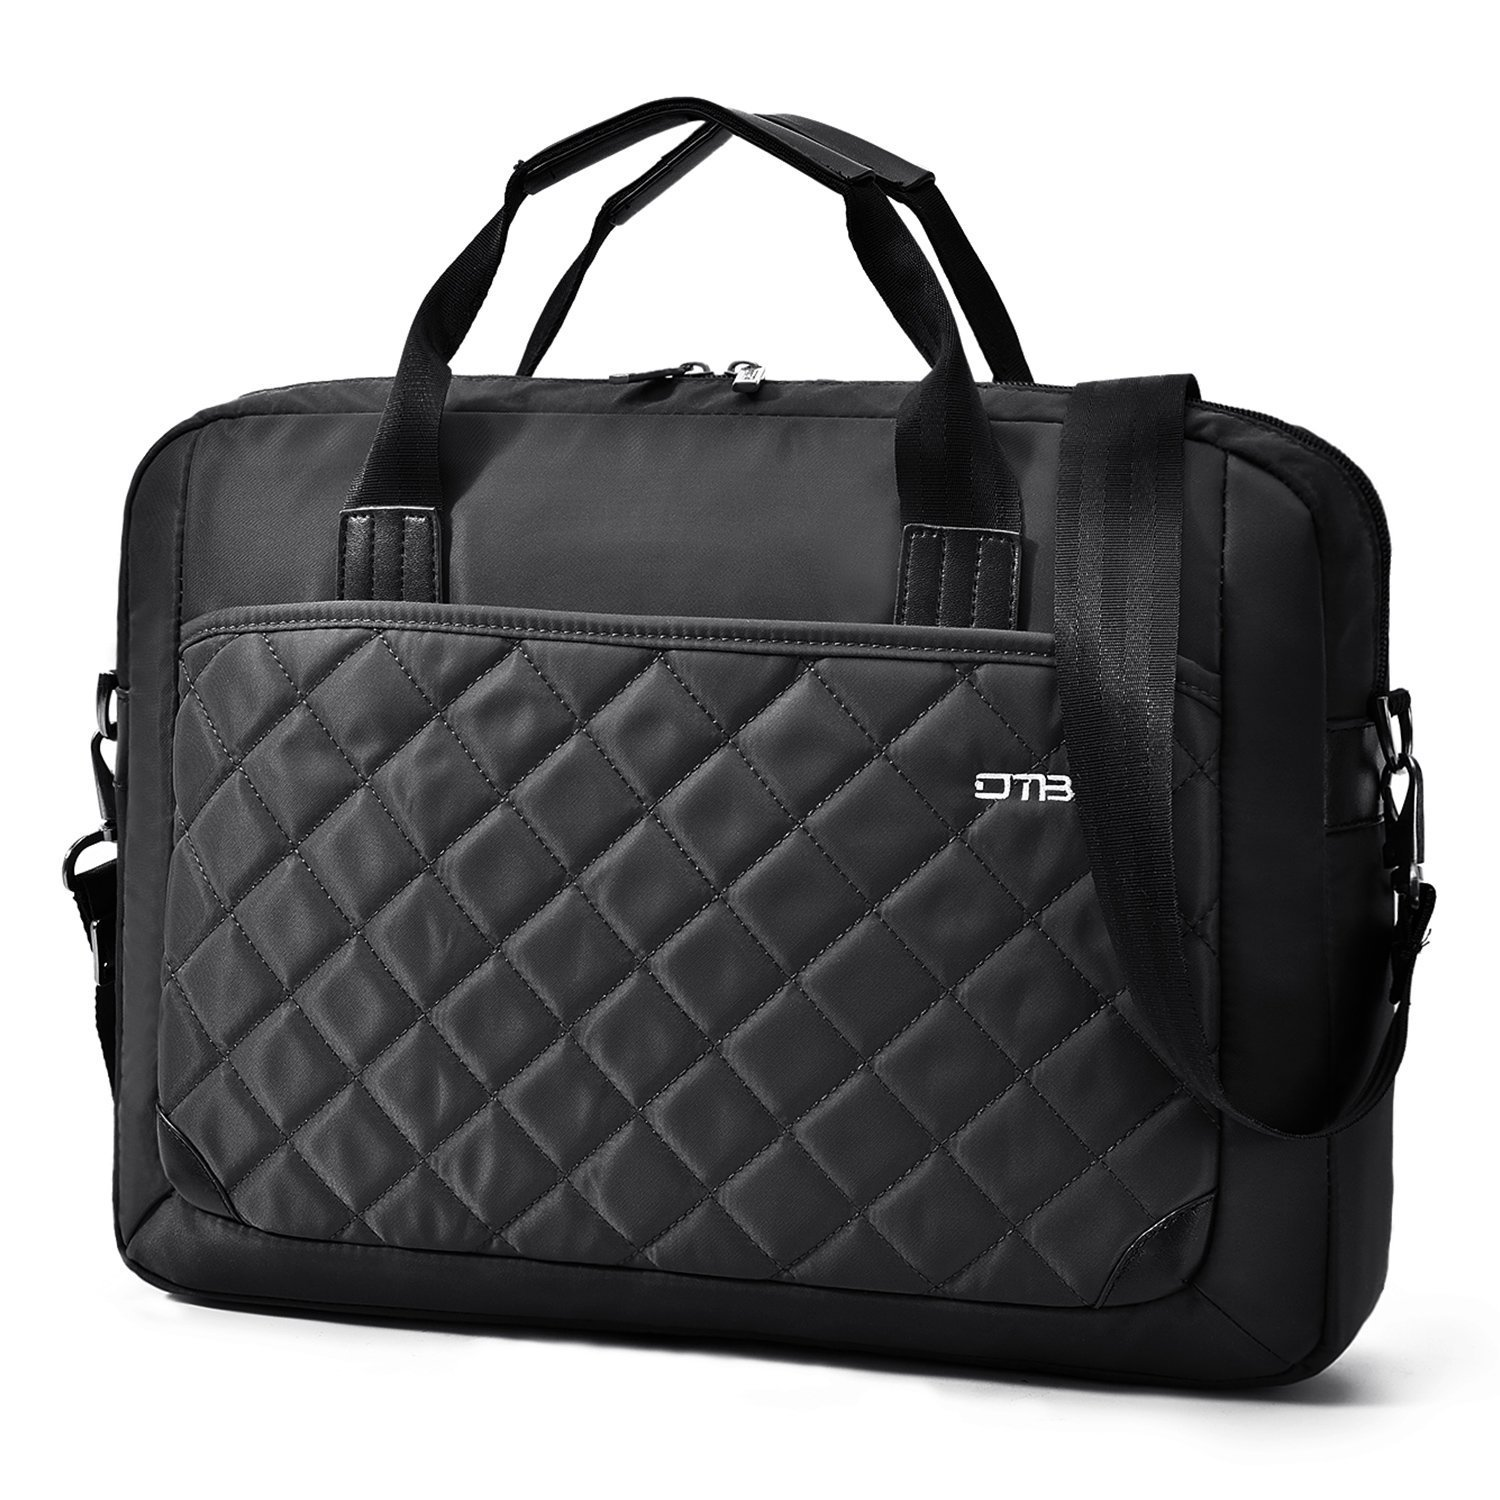 75ce434d536d Amazon.com: 15.6 Inches Laptop Bag DTBG Messenger Bag Nylon Shoulder ...